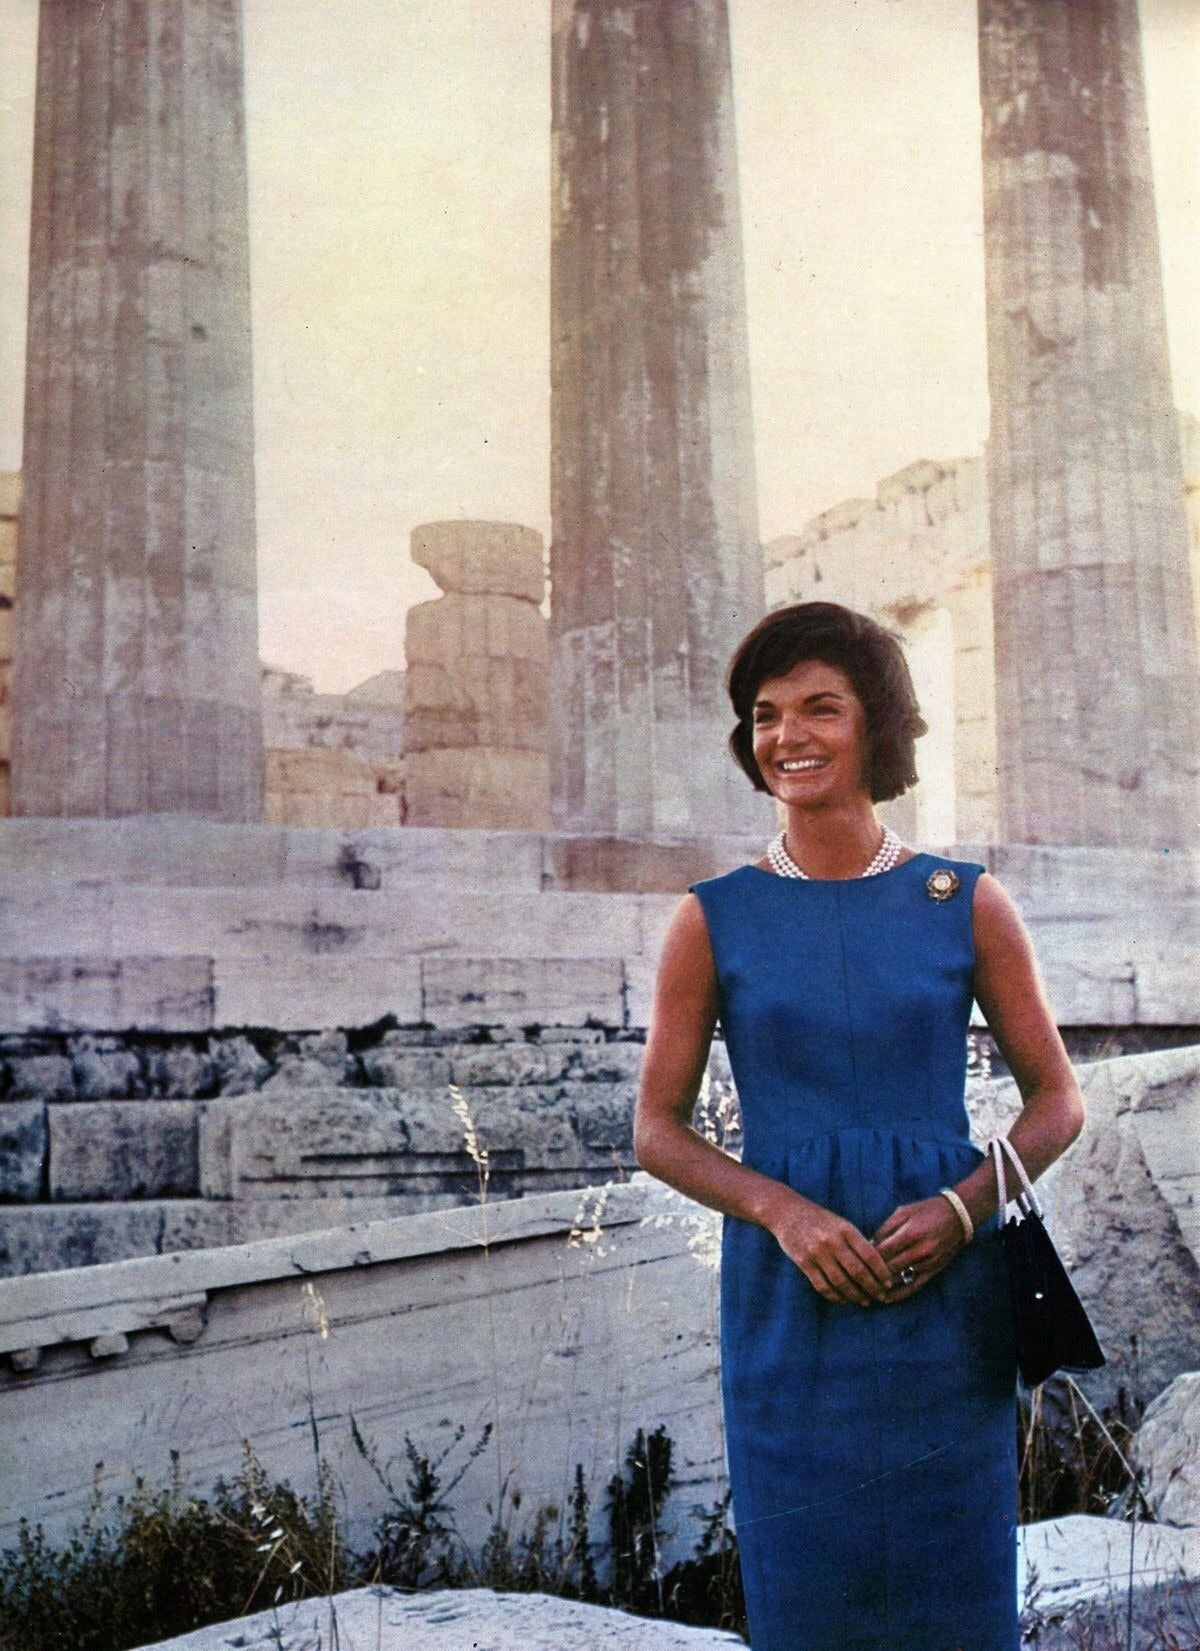 Jacqueline Kennedy is undoubtedly one of the most enduring style icons, and Norman Norell was one of her go-to designers. When she got ready for a state visit to the Parthenon in Athens, Greece, in 1961, the First Lady turned to him, as she often